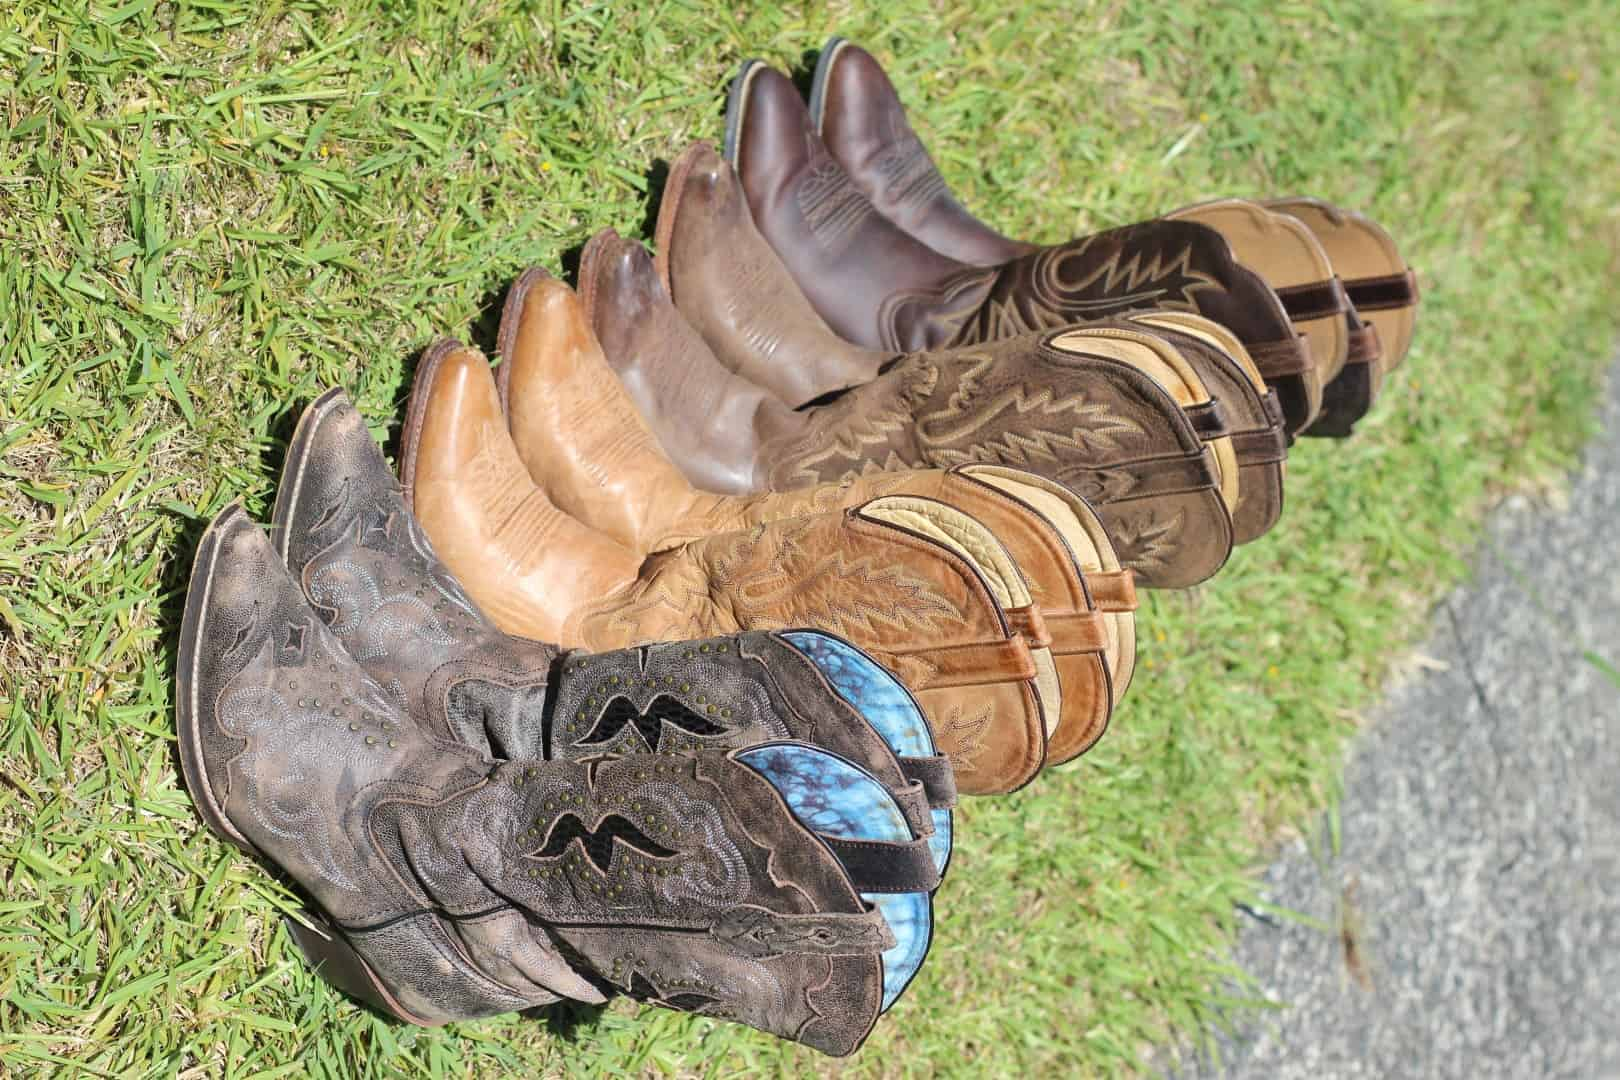 All the cowboy boots